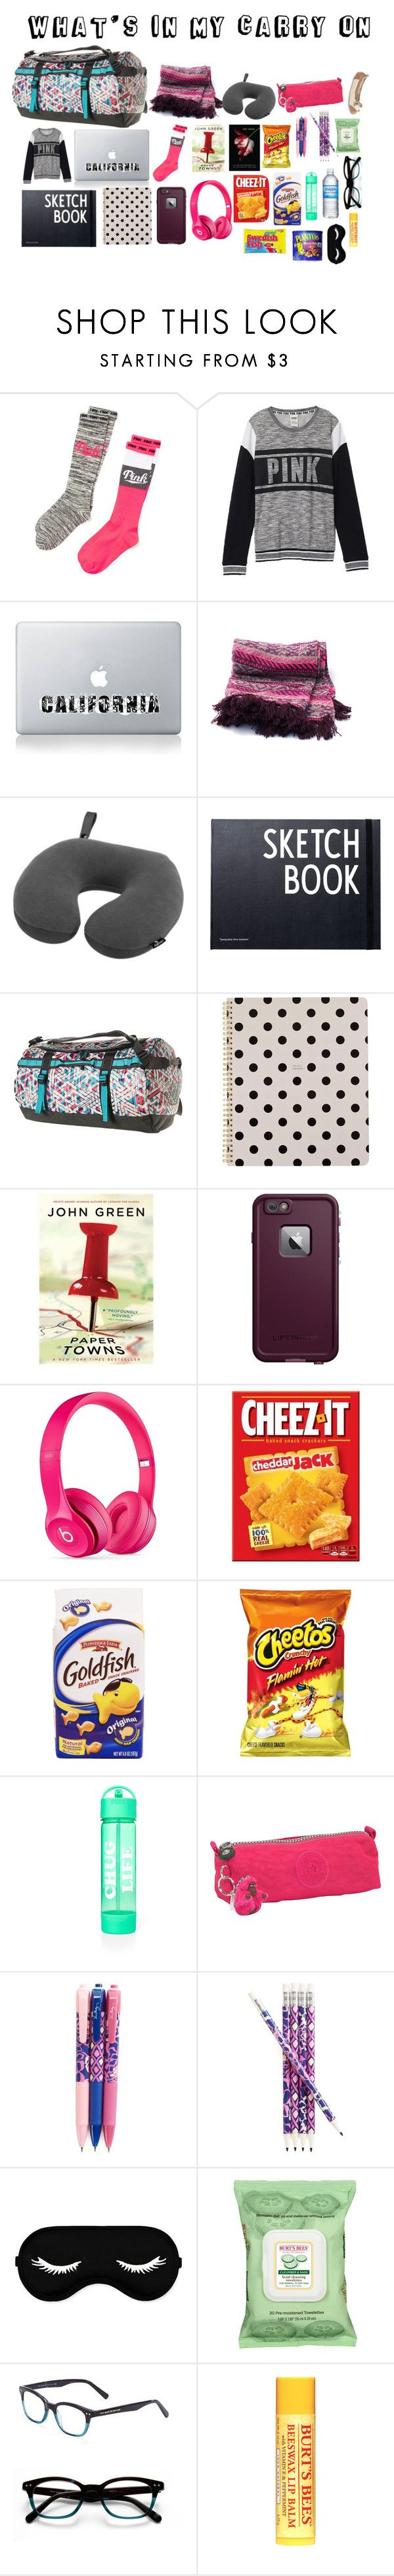 """what's in my carry on bag for a long flight"" by jessica-2810 on Polyvore featuring Victoria's Secret, Vinyl Revolution, Eagle Creek, Design Letters, The North Face, Kate Spade, LifeProof, Beats by Dr. Dre, Kipling and Vera Bradley"